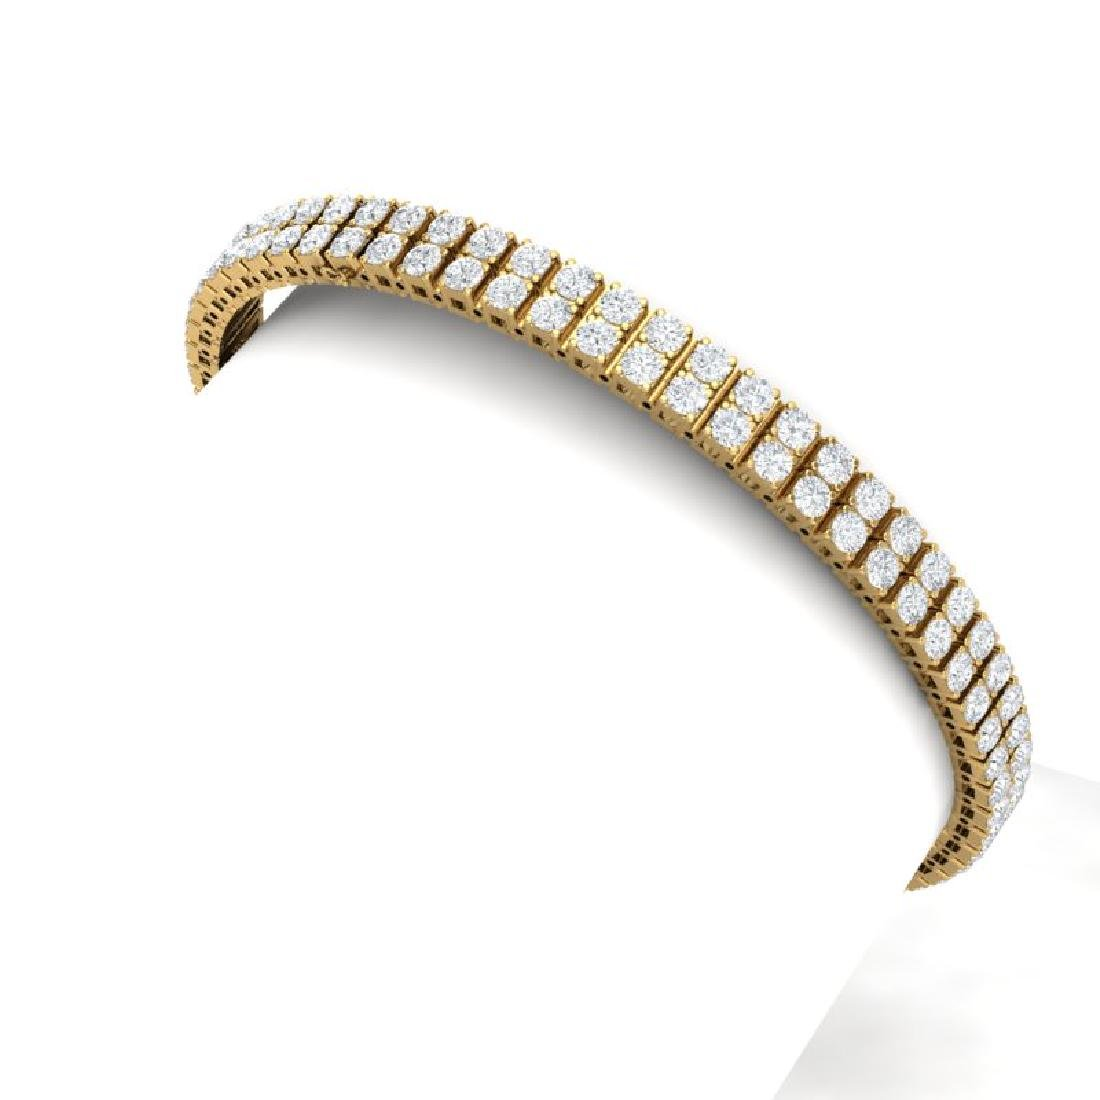 8 CTW Certified SI/I Diamond Bracelet 18K Yellow Gold